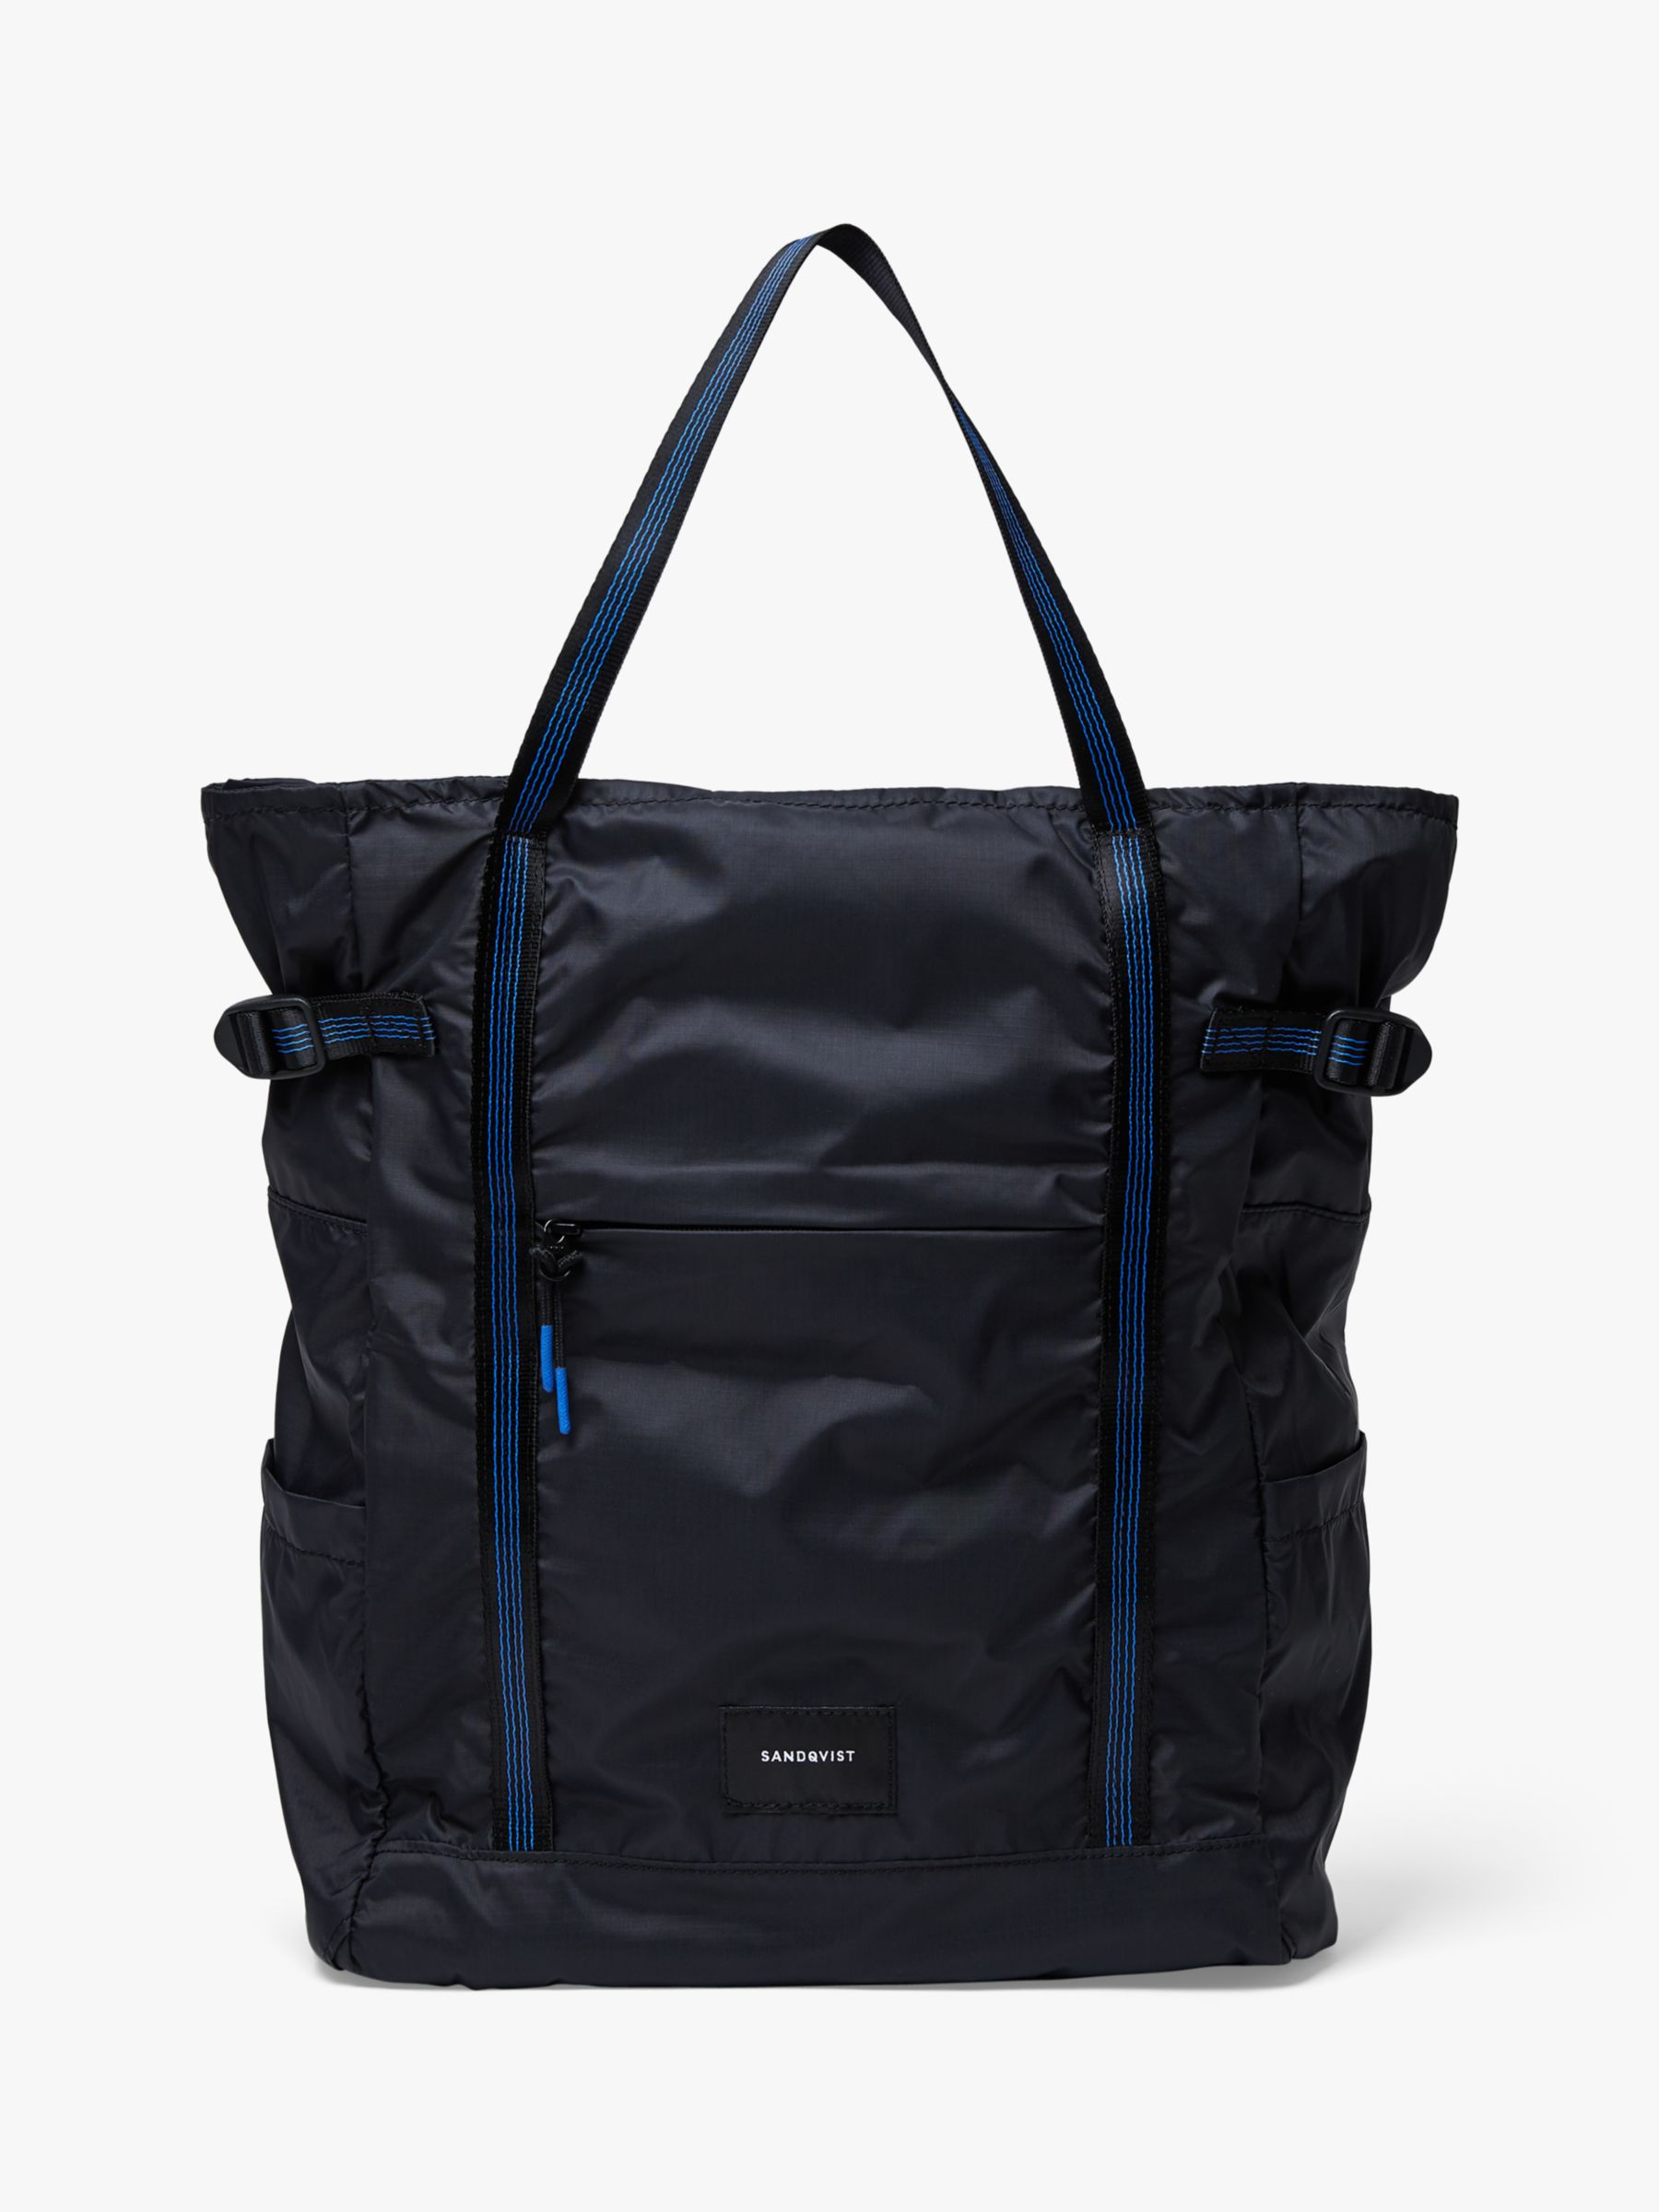 Sandqvist Sandqvist Roger Outdoors Recycled Tote Backpack, Black